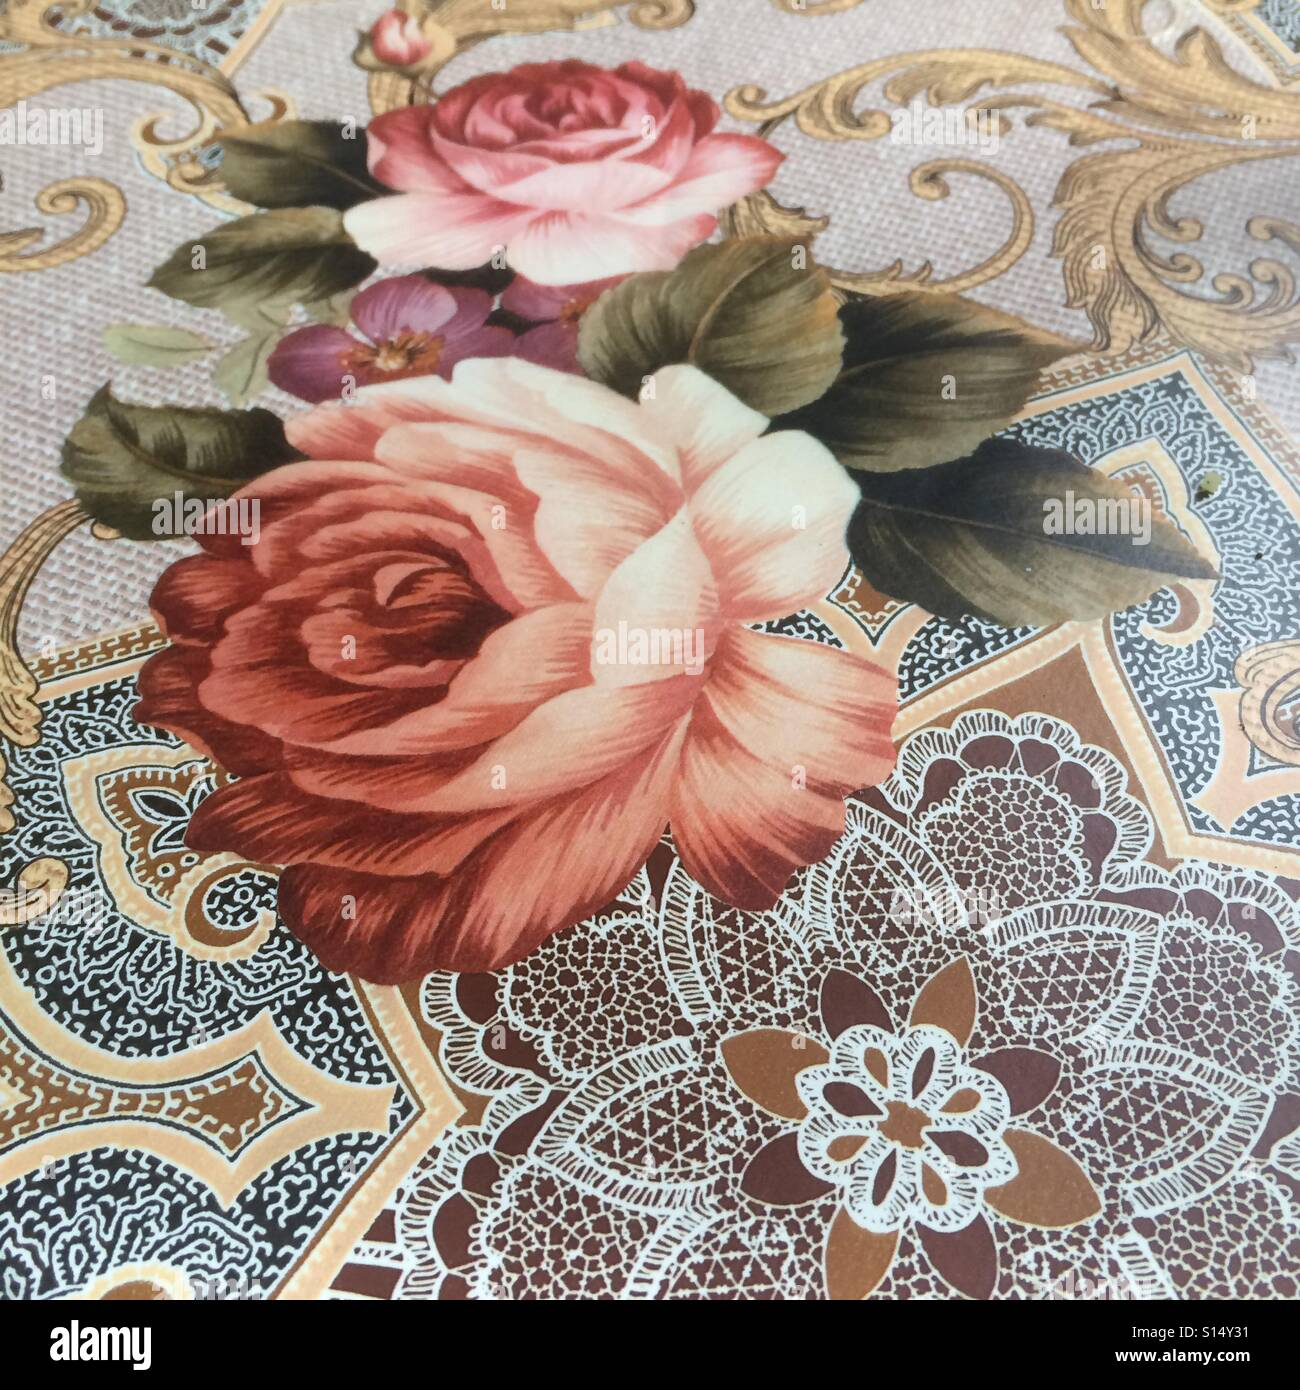 A table cloth showing roses - Stock Image